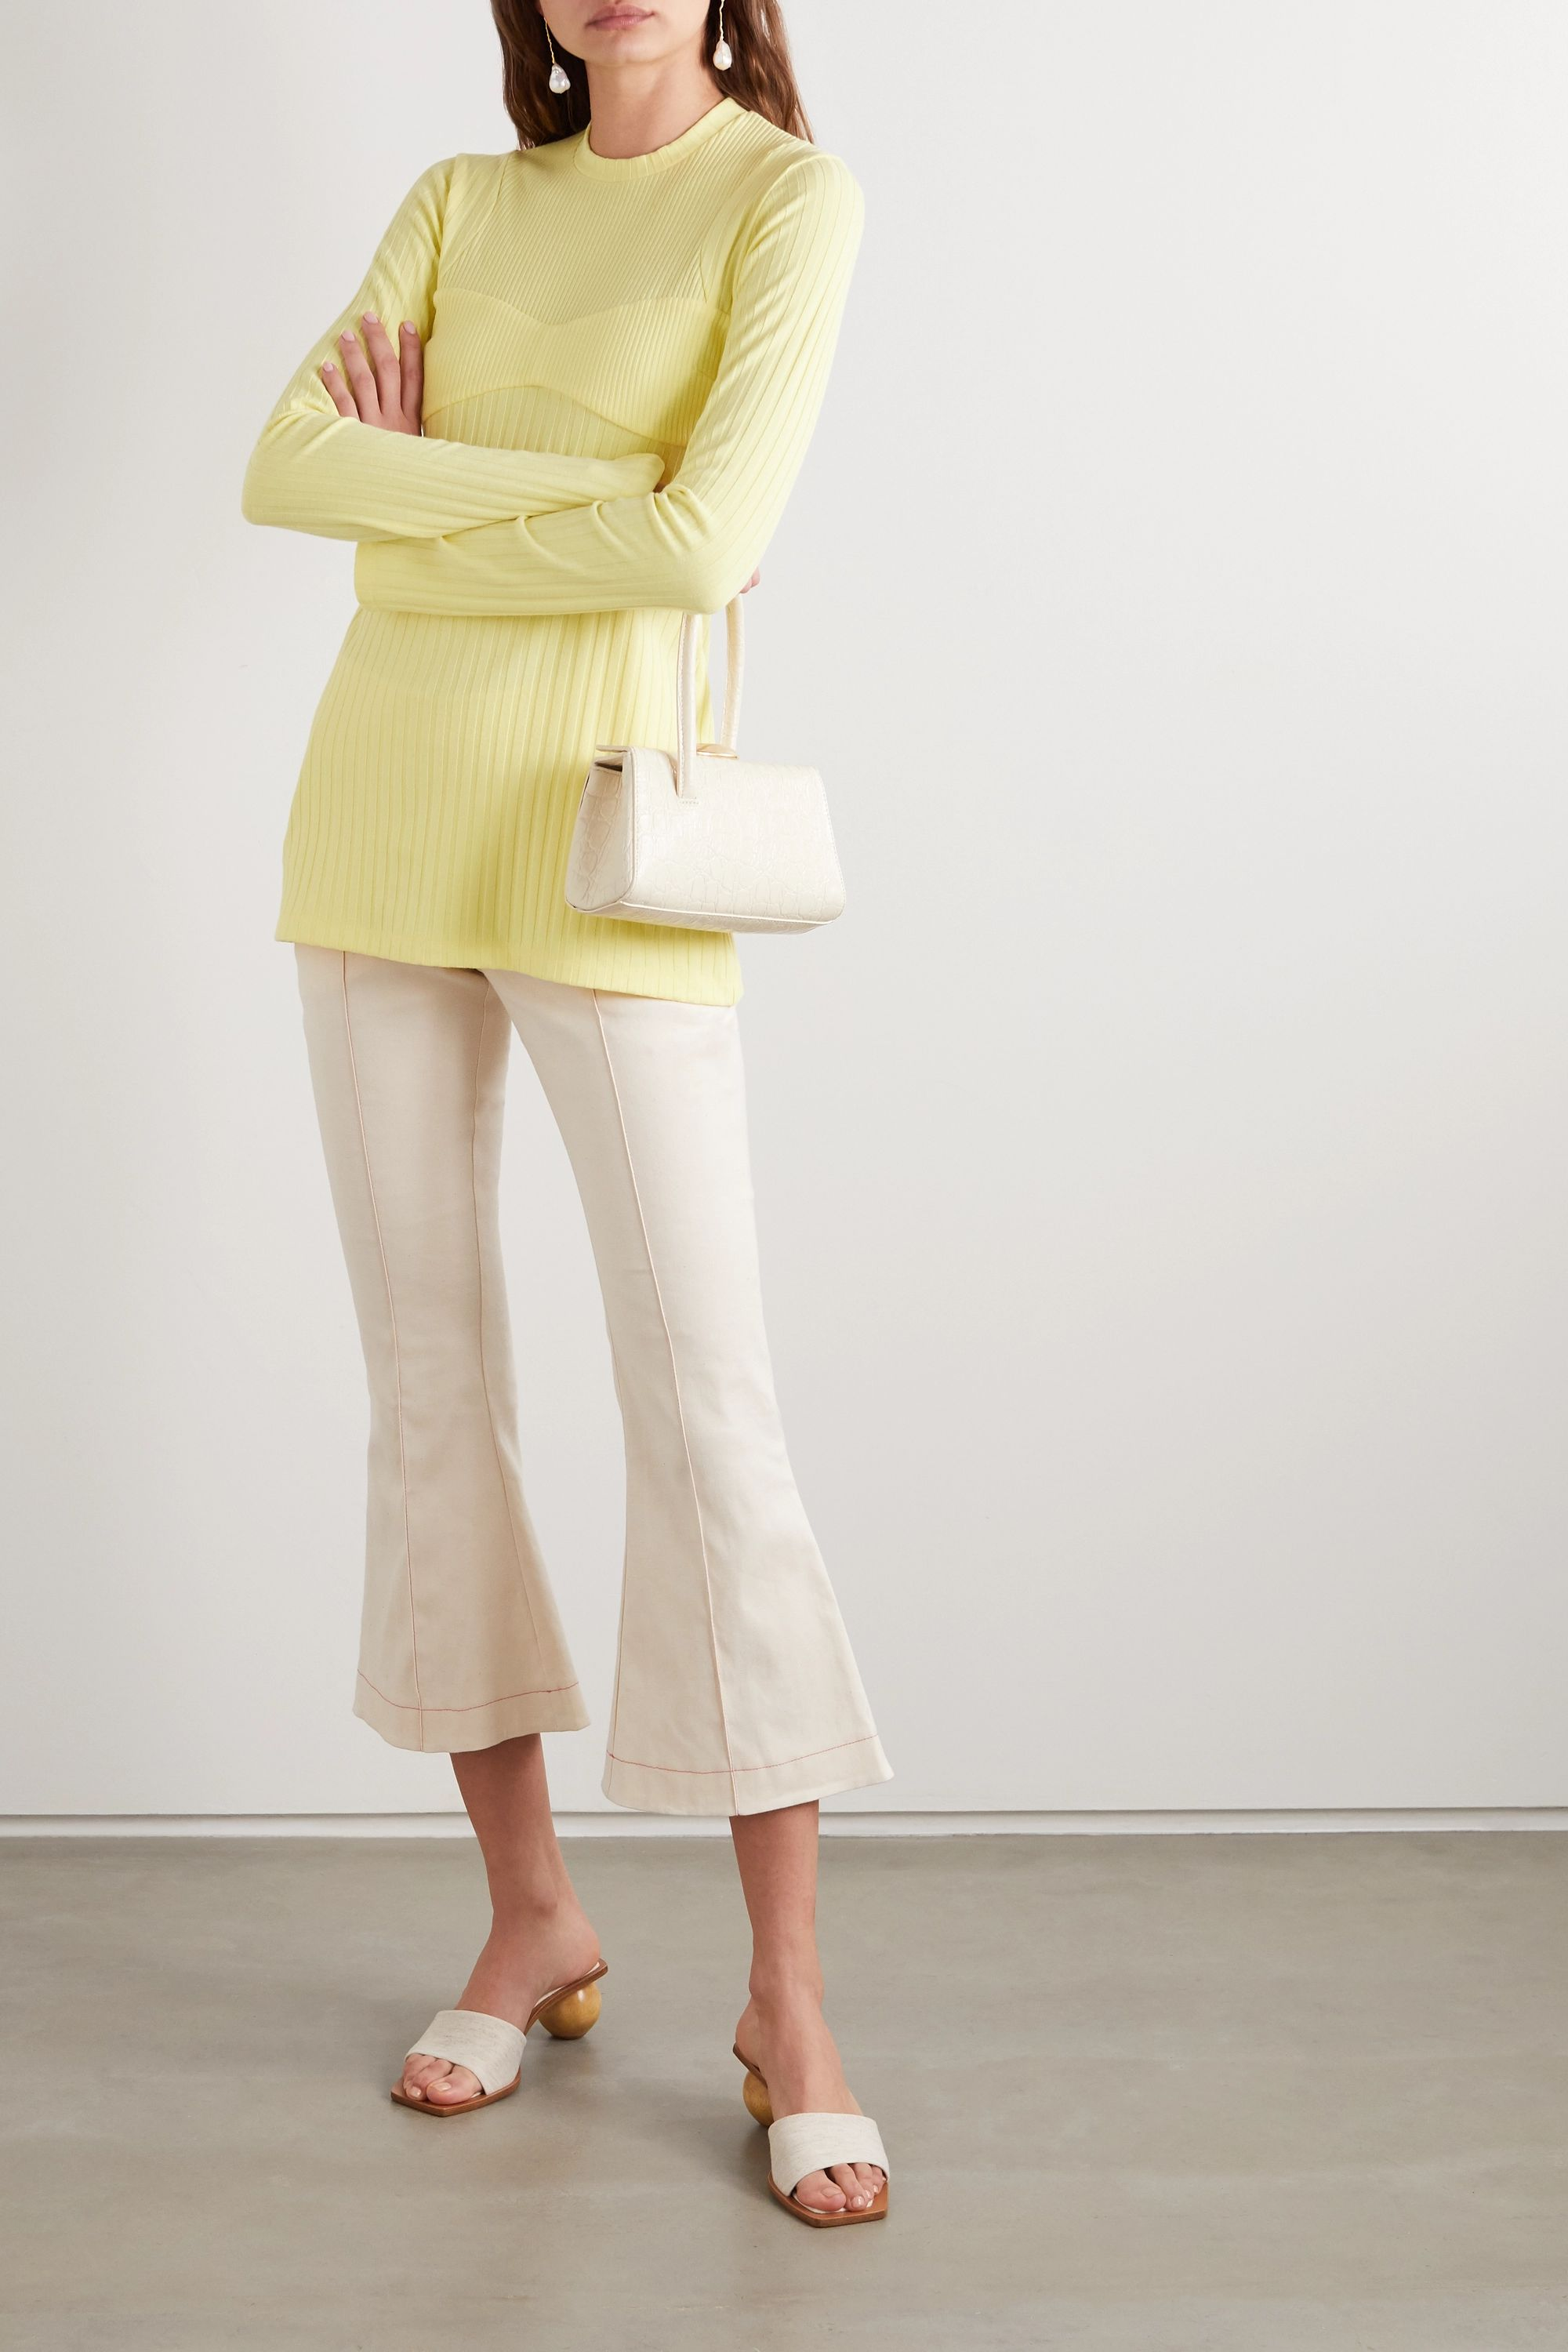 Maggie Marilyn + NET SUSTAIN I'm All In ribbed-knit and satin-crepe dress